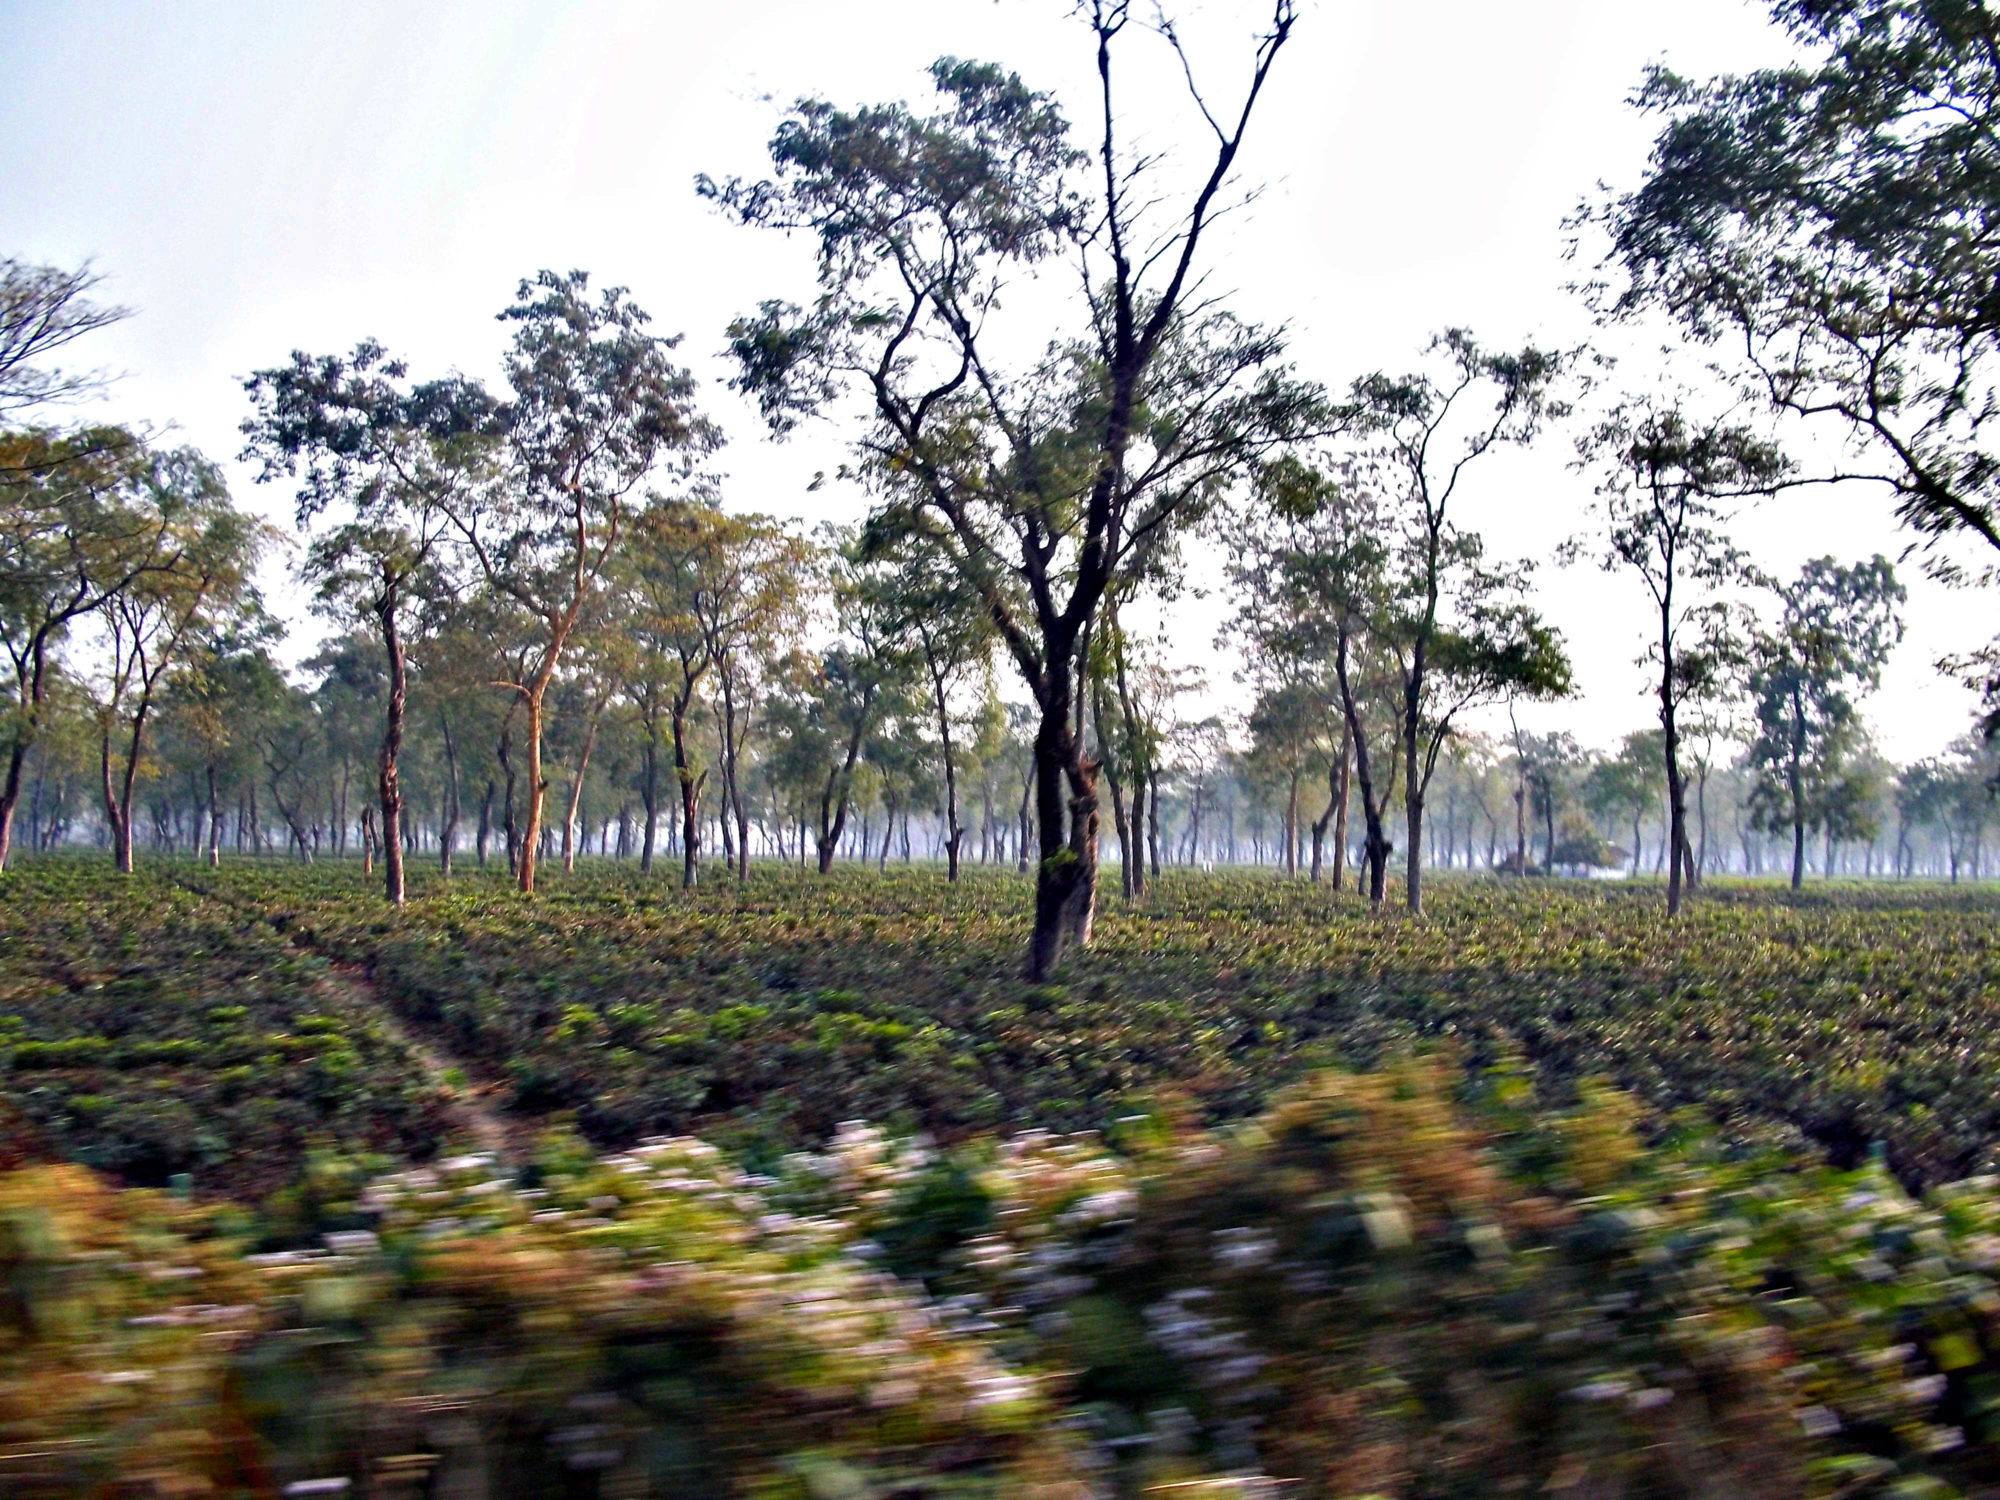 What are some quick facts about Tea Gardens in Assam, northeast India?